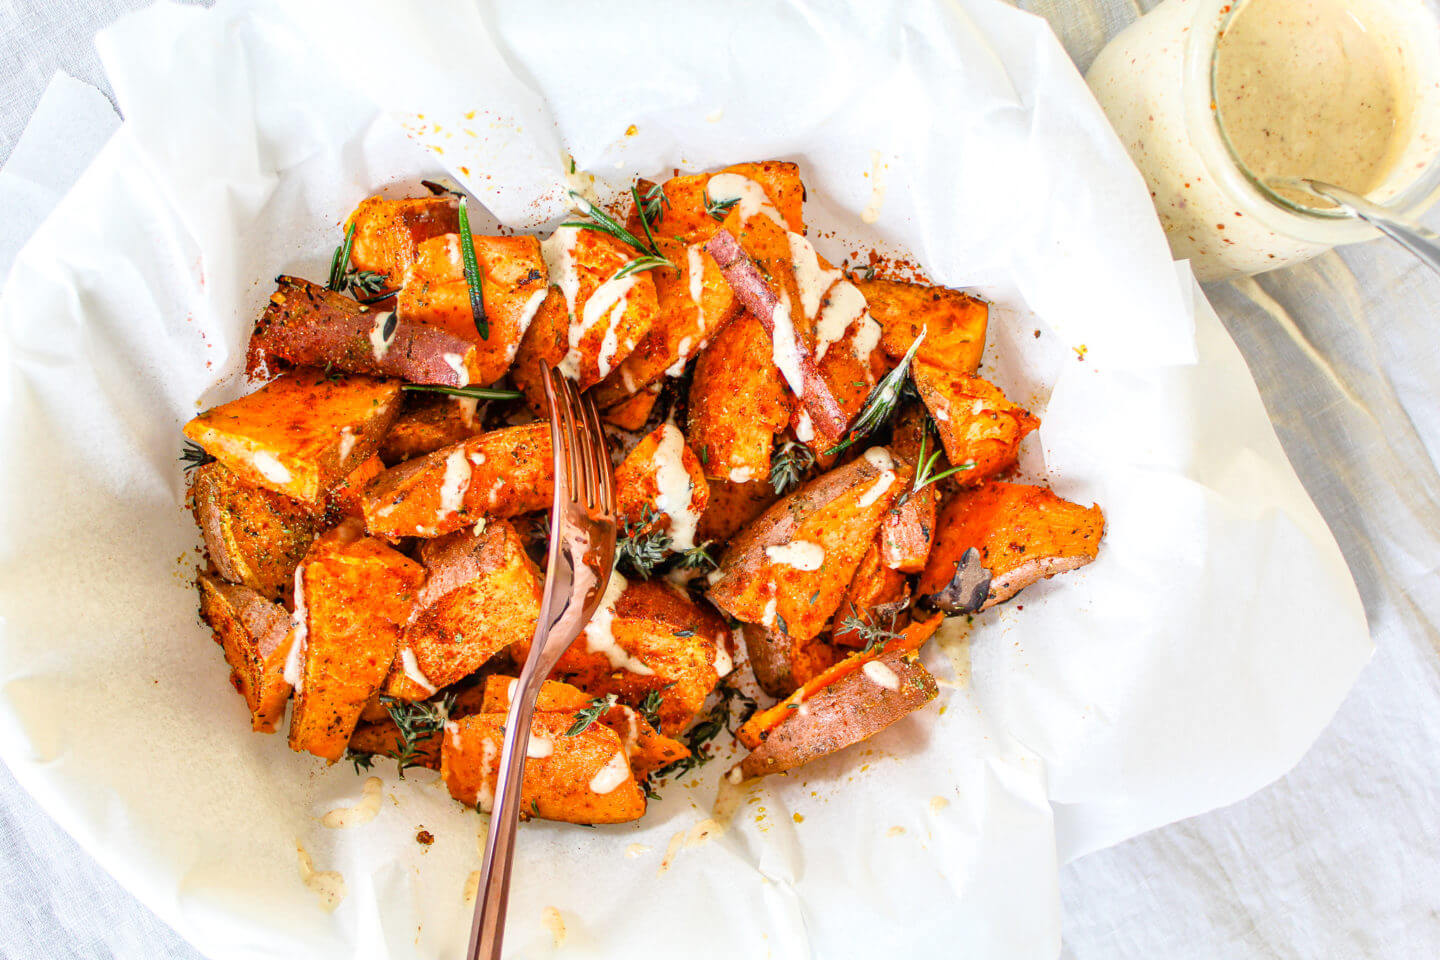 Sustainable and Plant-based Lifestyle influencer shares her delicious Sanza's sweet Bravas recipe!